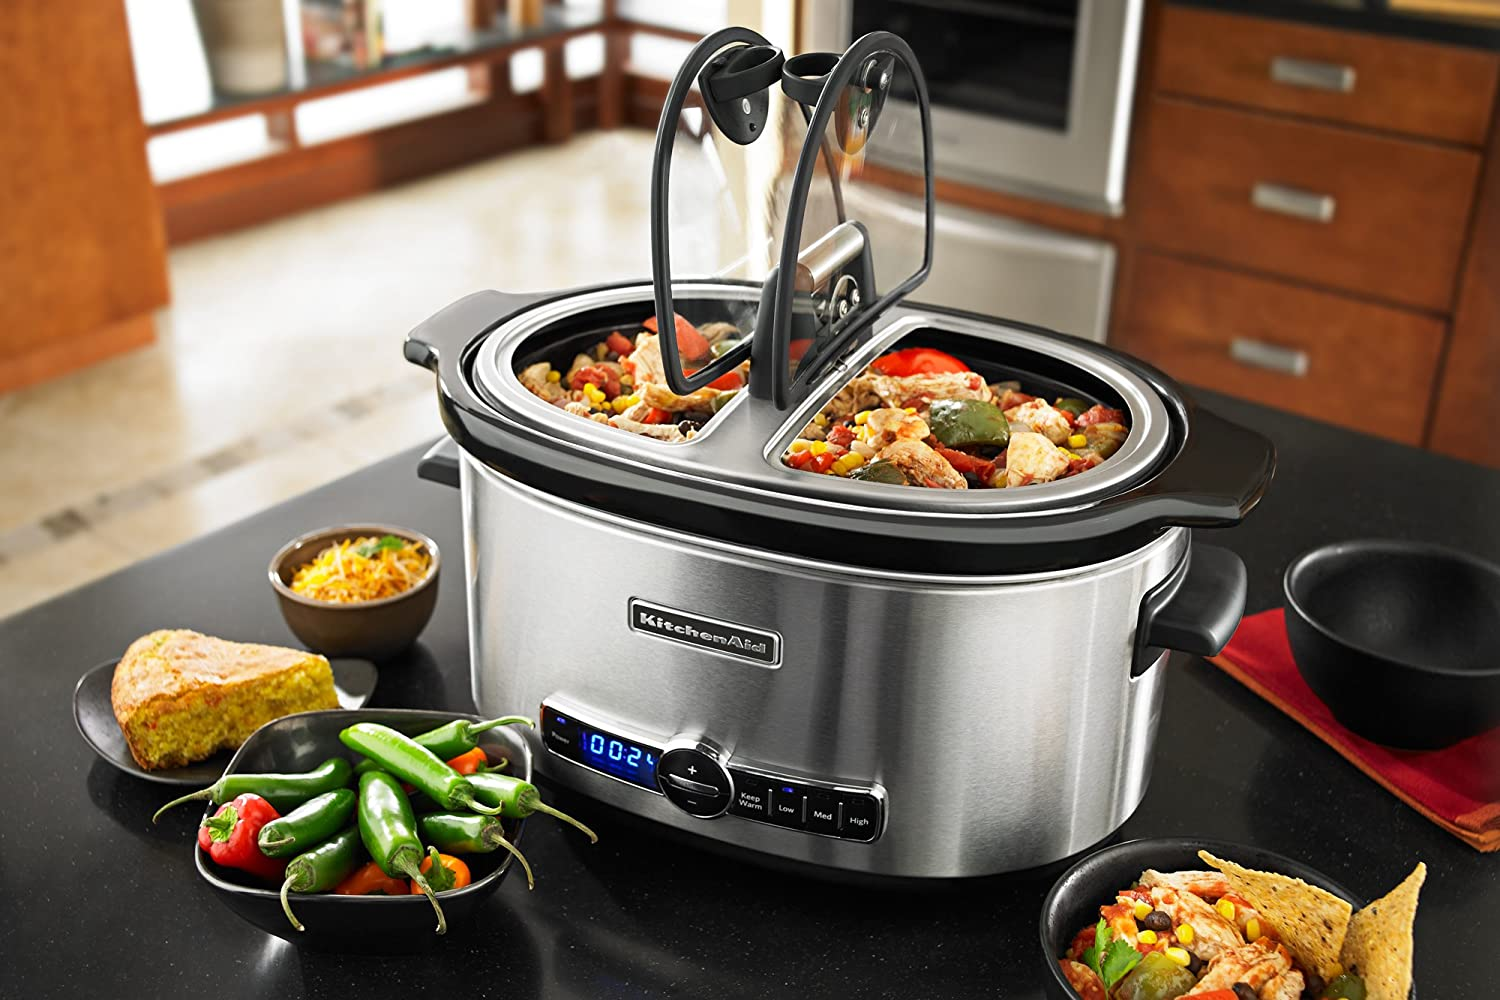 KitchenAid Slow Cooker with Easy Serve Glass Lid.